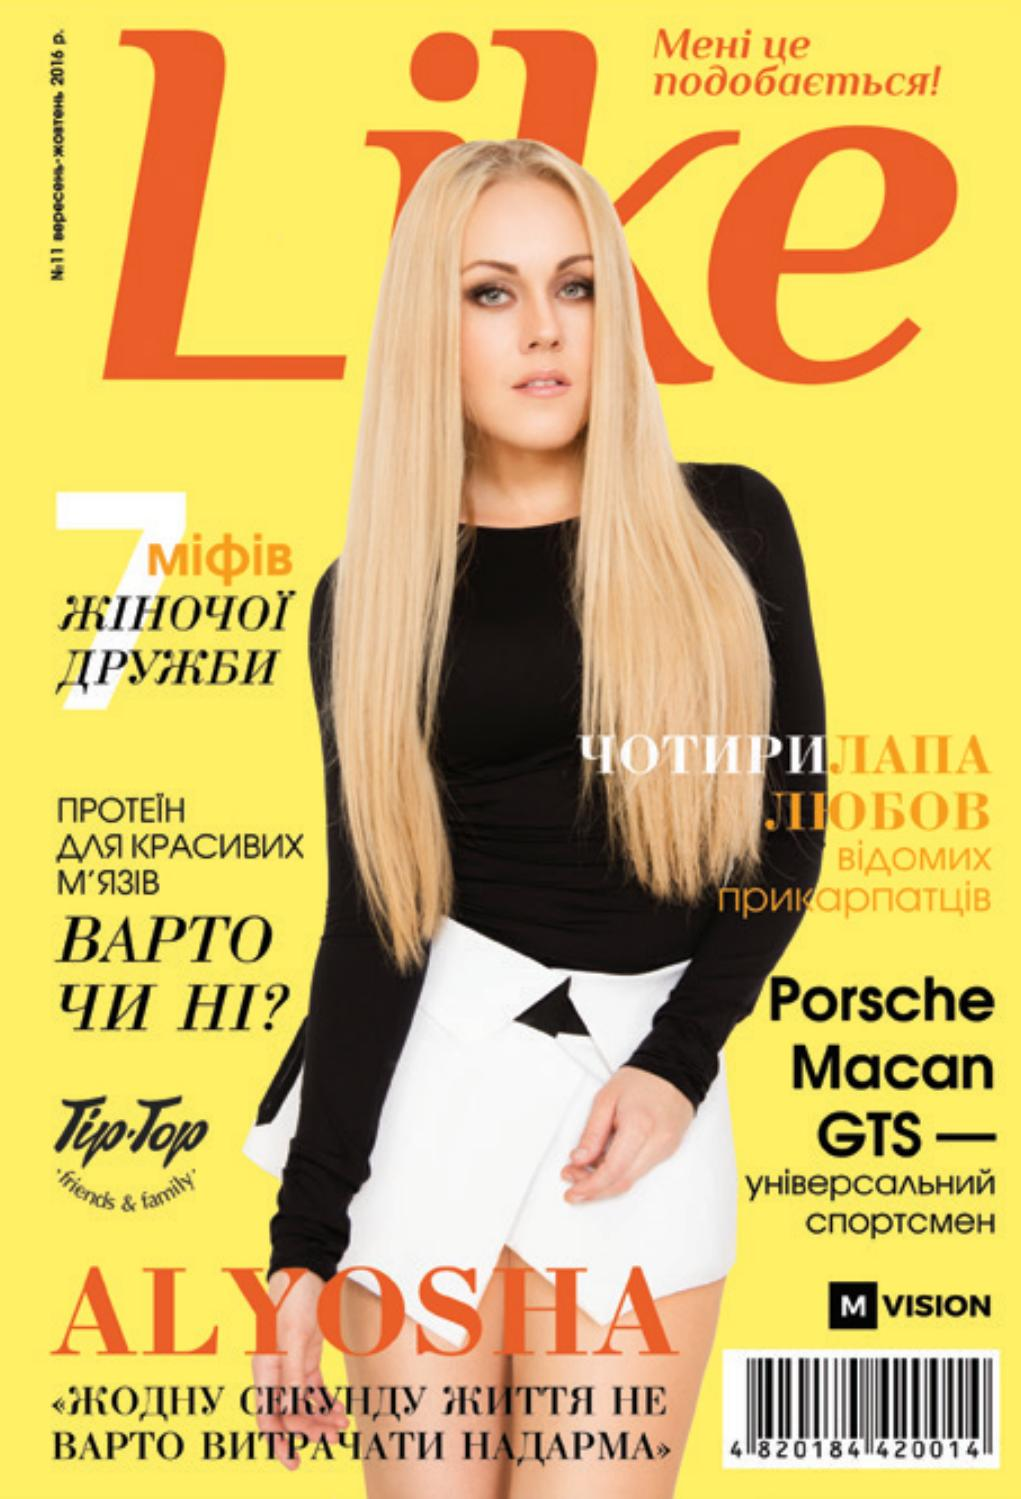 Like Magazine №11 by Andrew Porhunovskiy - issuu a07721ab1be64